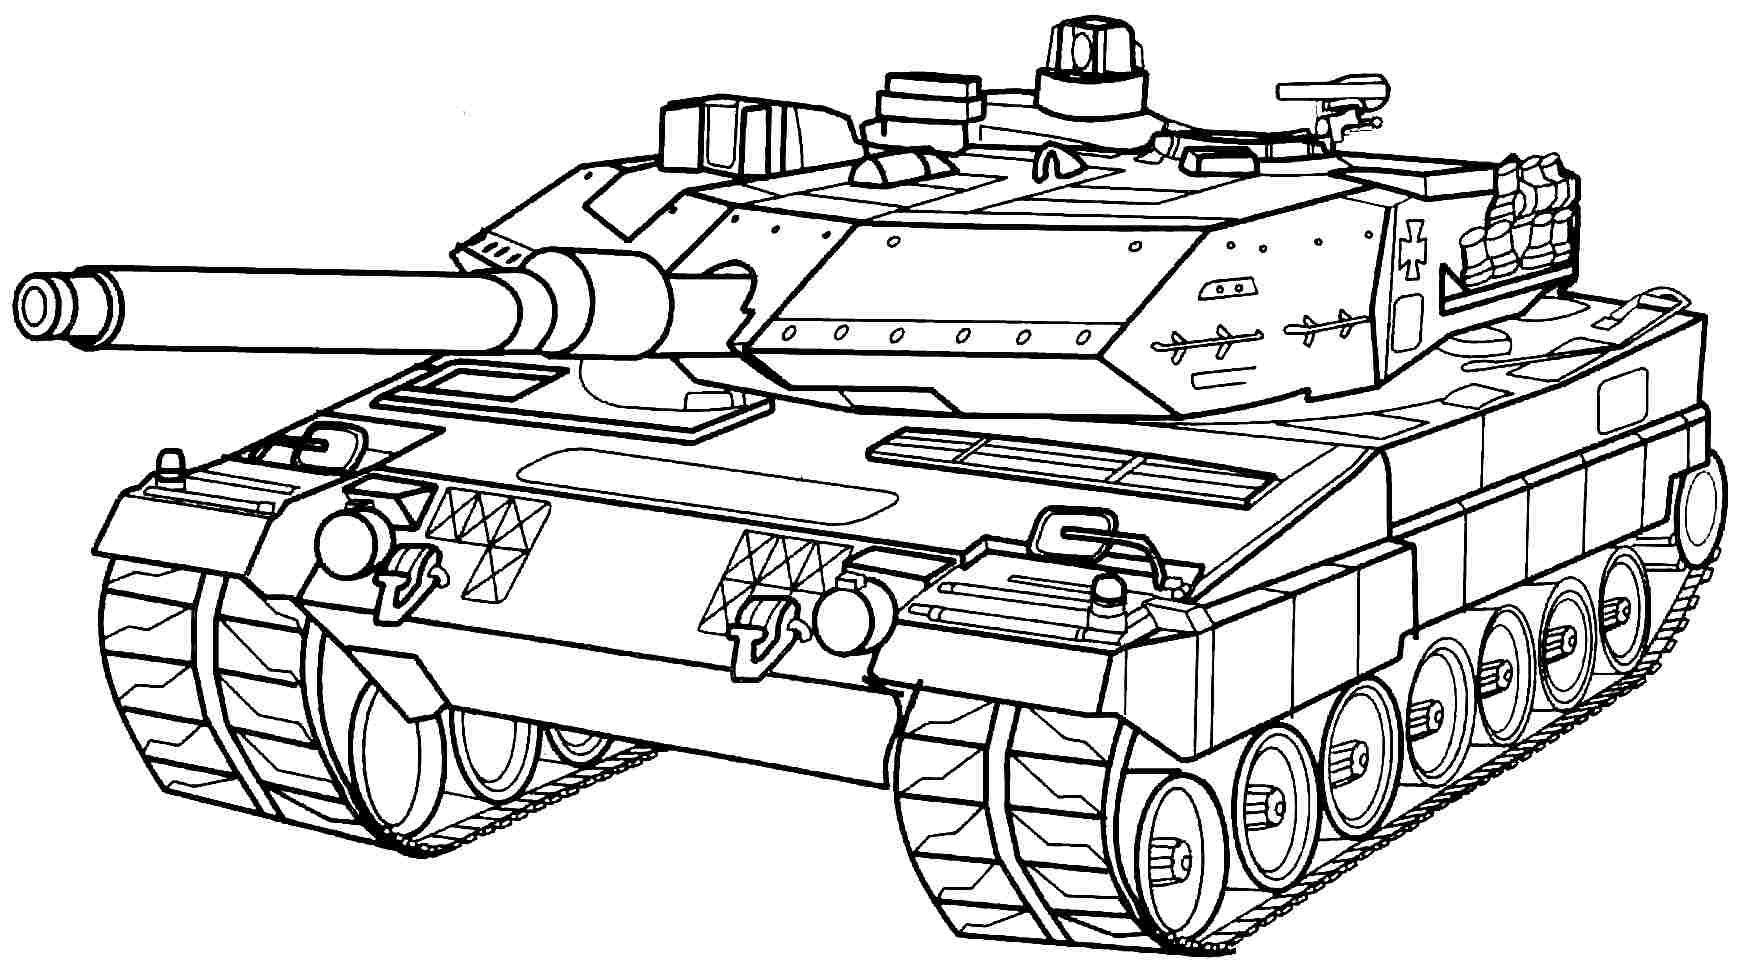 coloring pages navy - photo#39